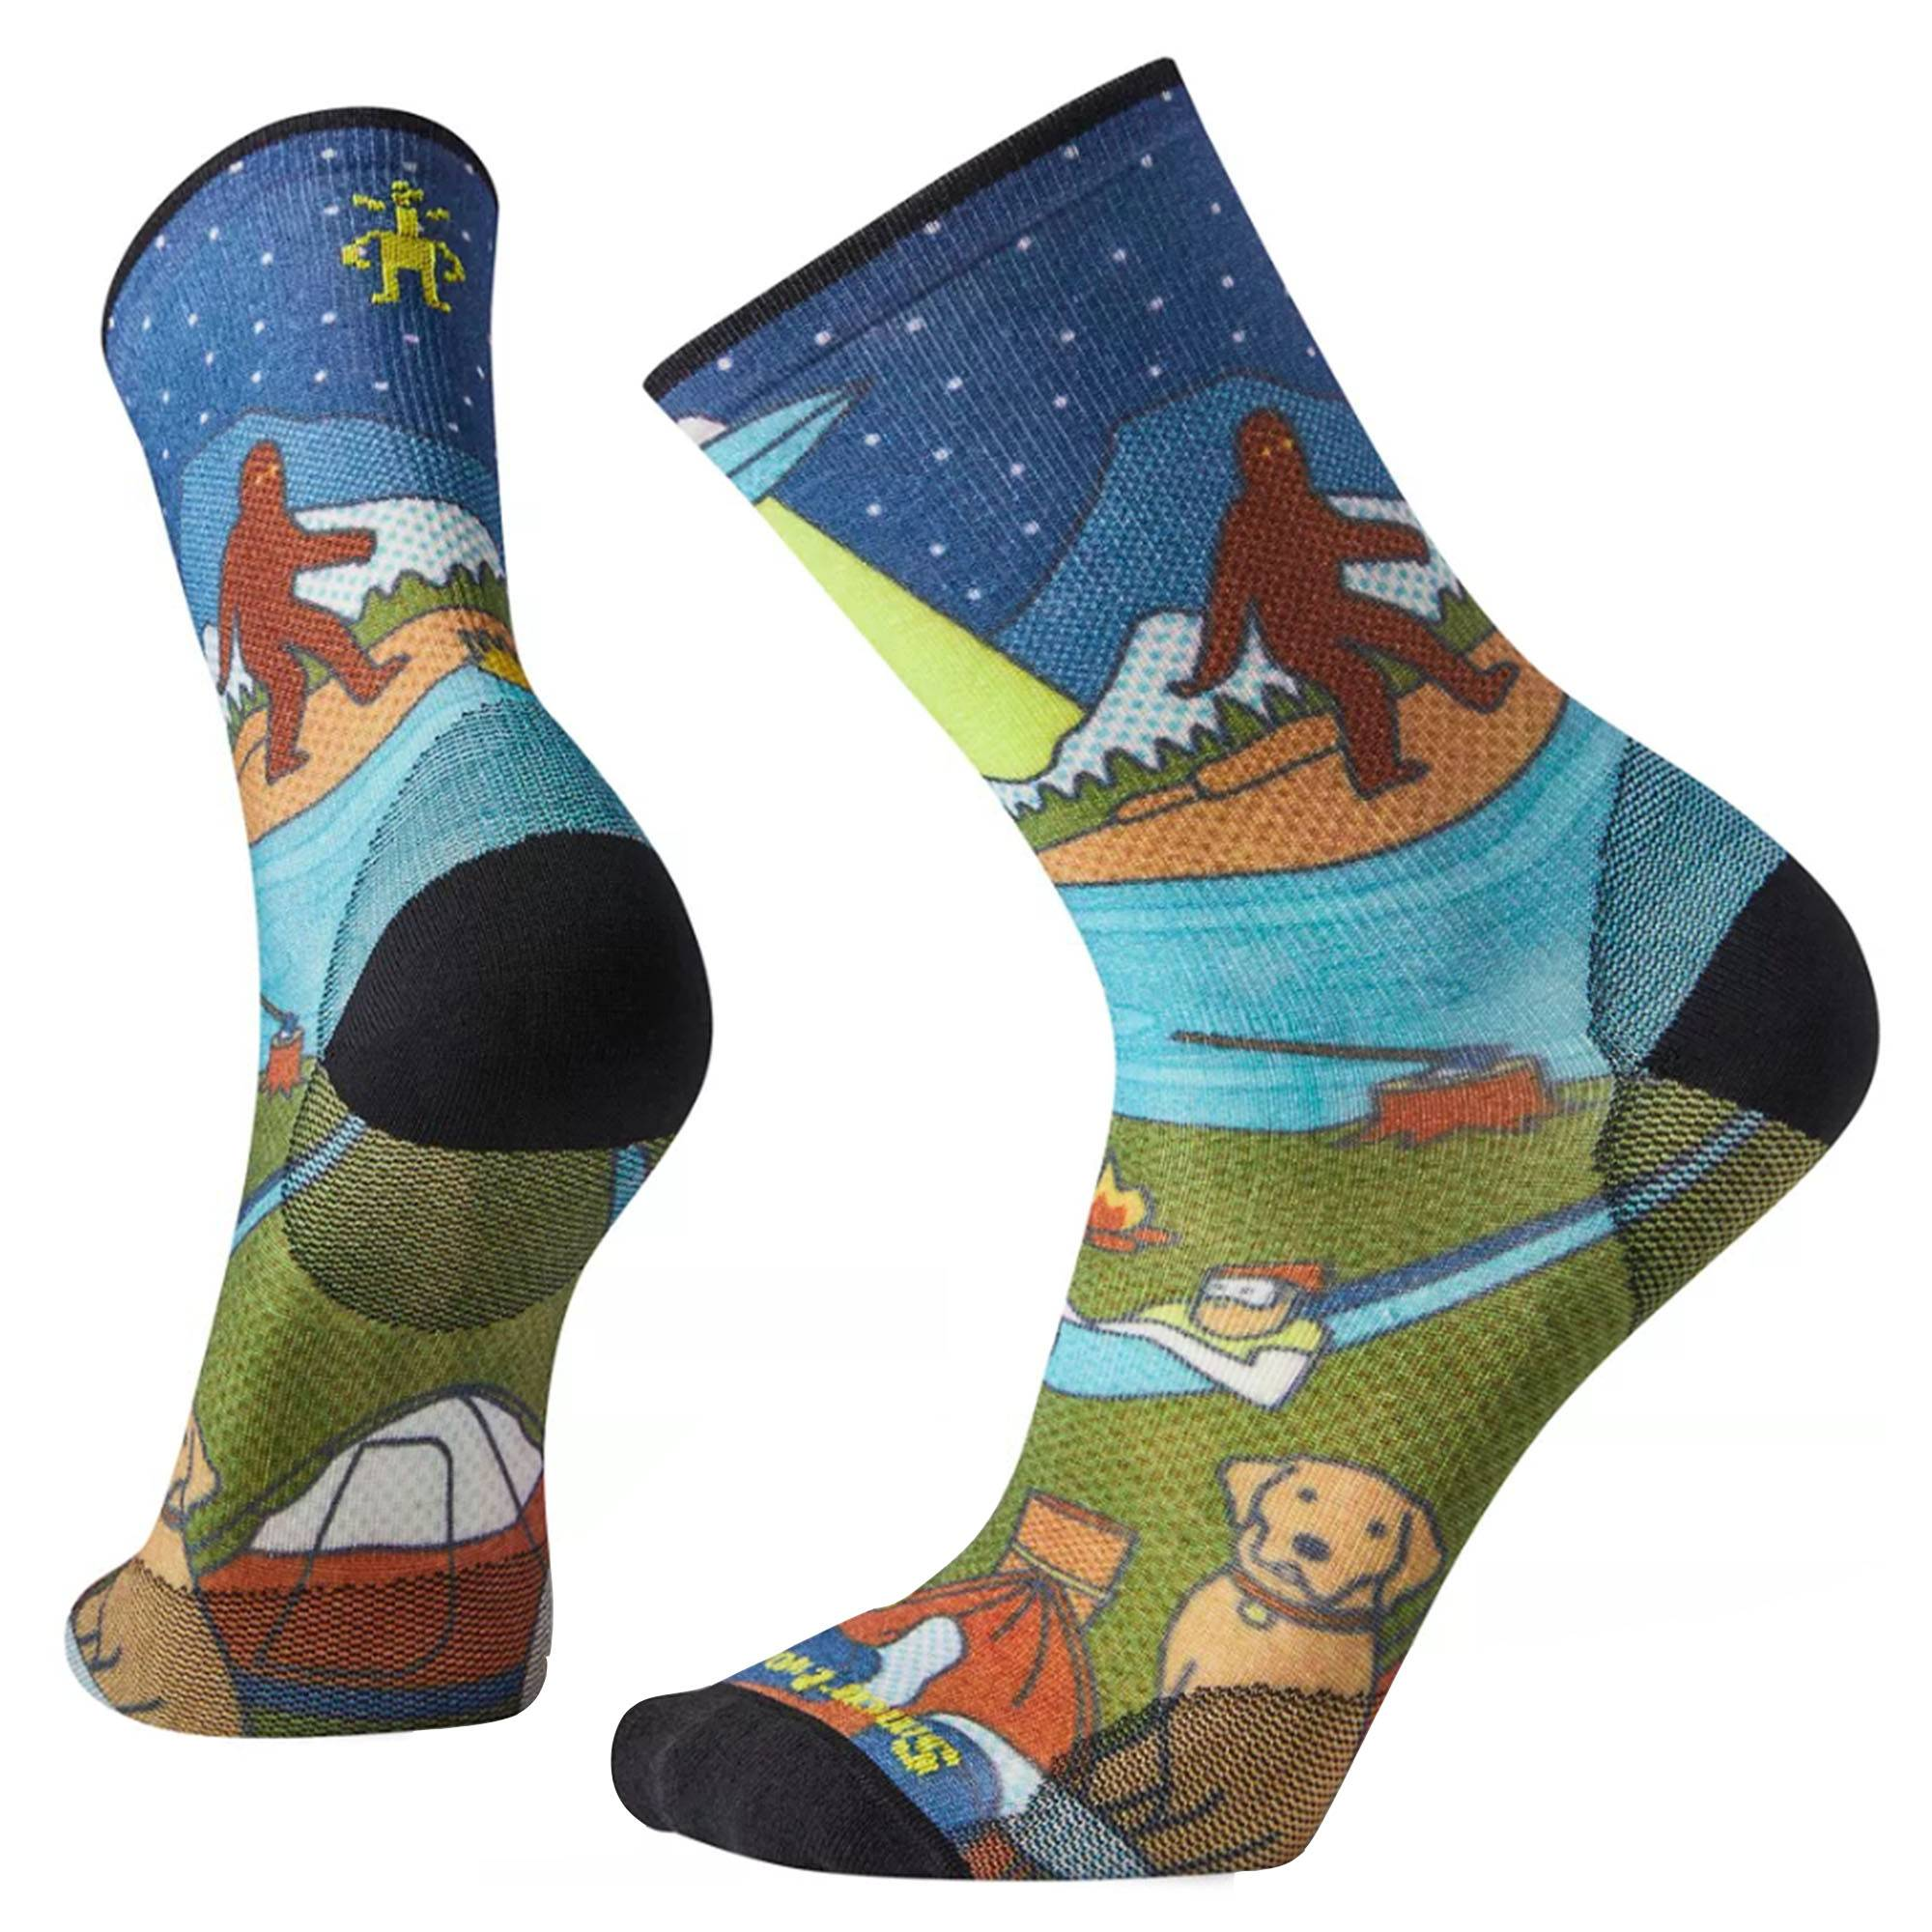 Smartwool Men's PHD Outdoor Ultra Light Monster Camping Print Crew Socks  - Multicolored - Size: Large